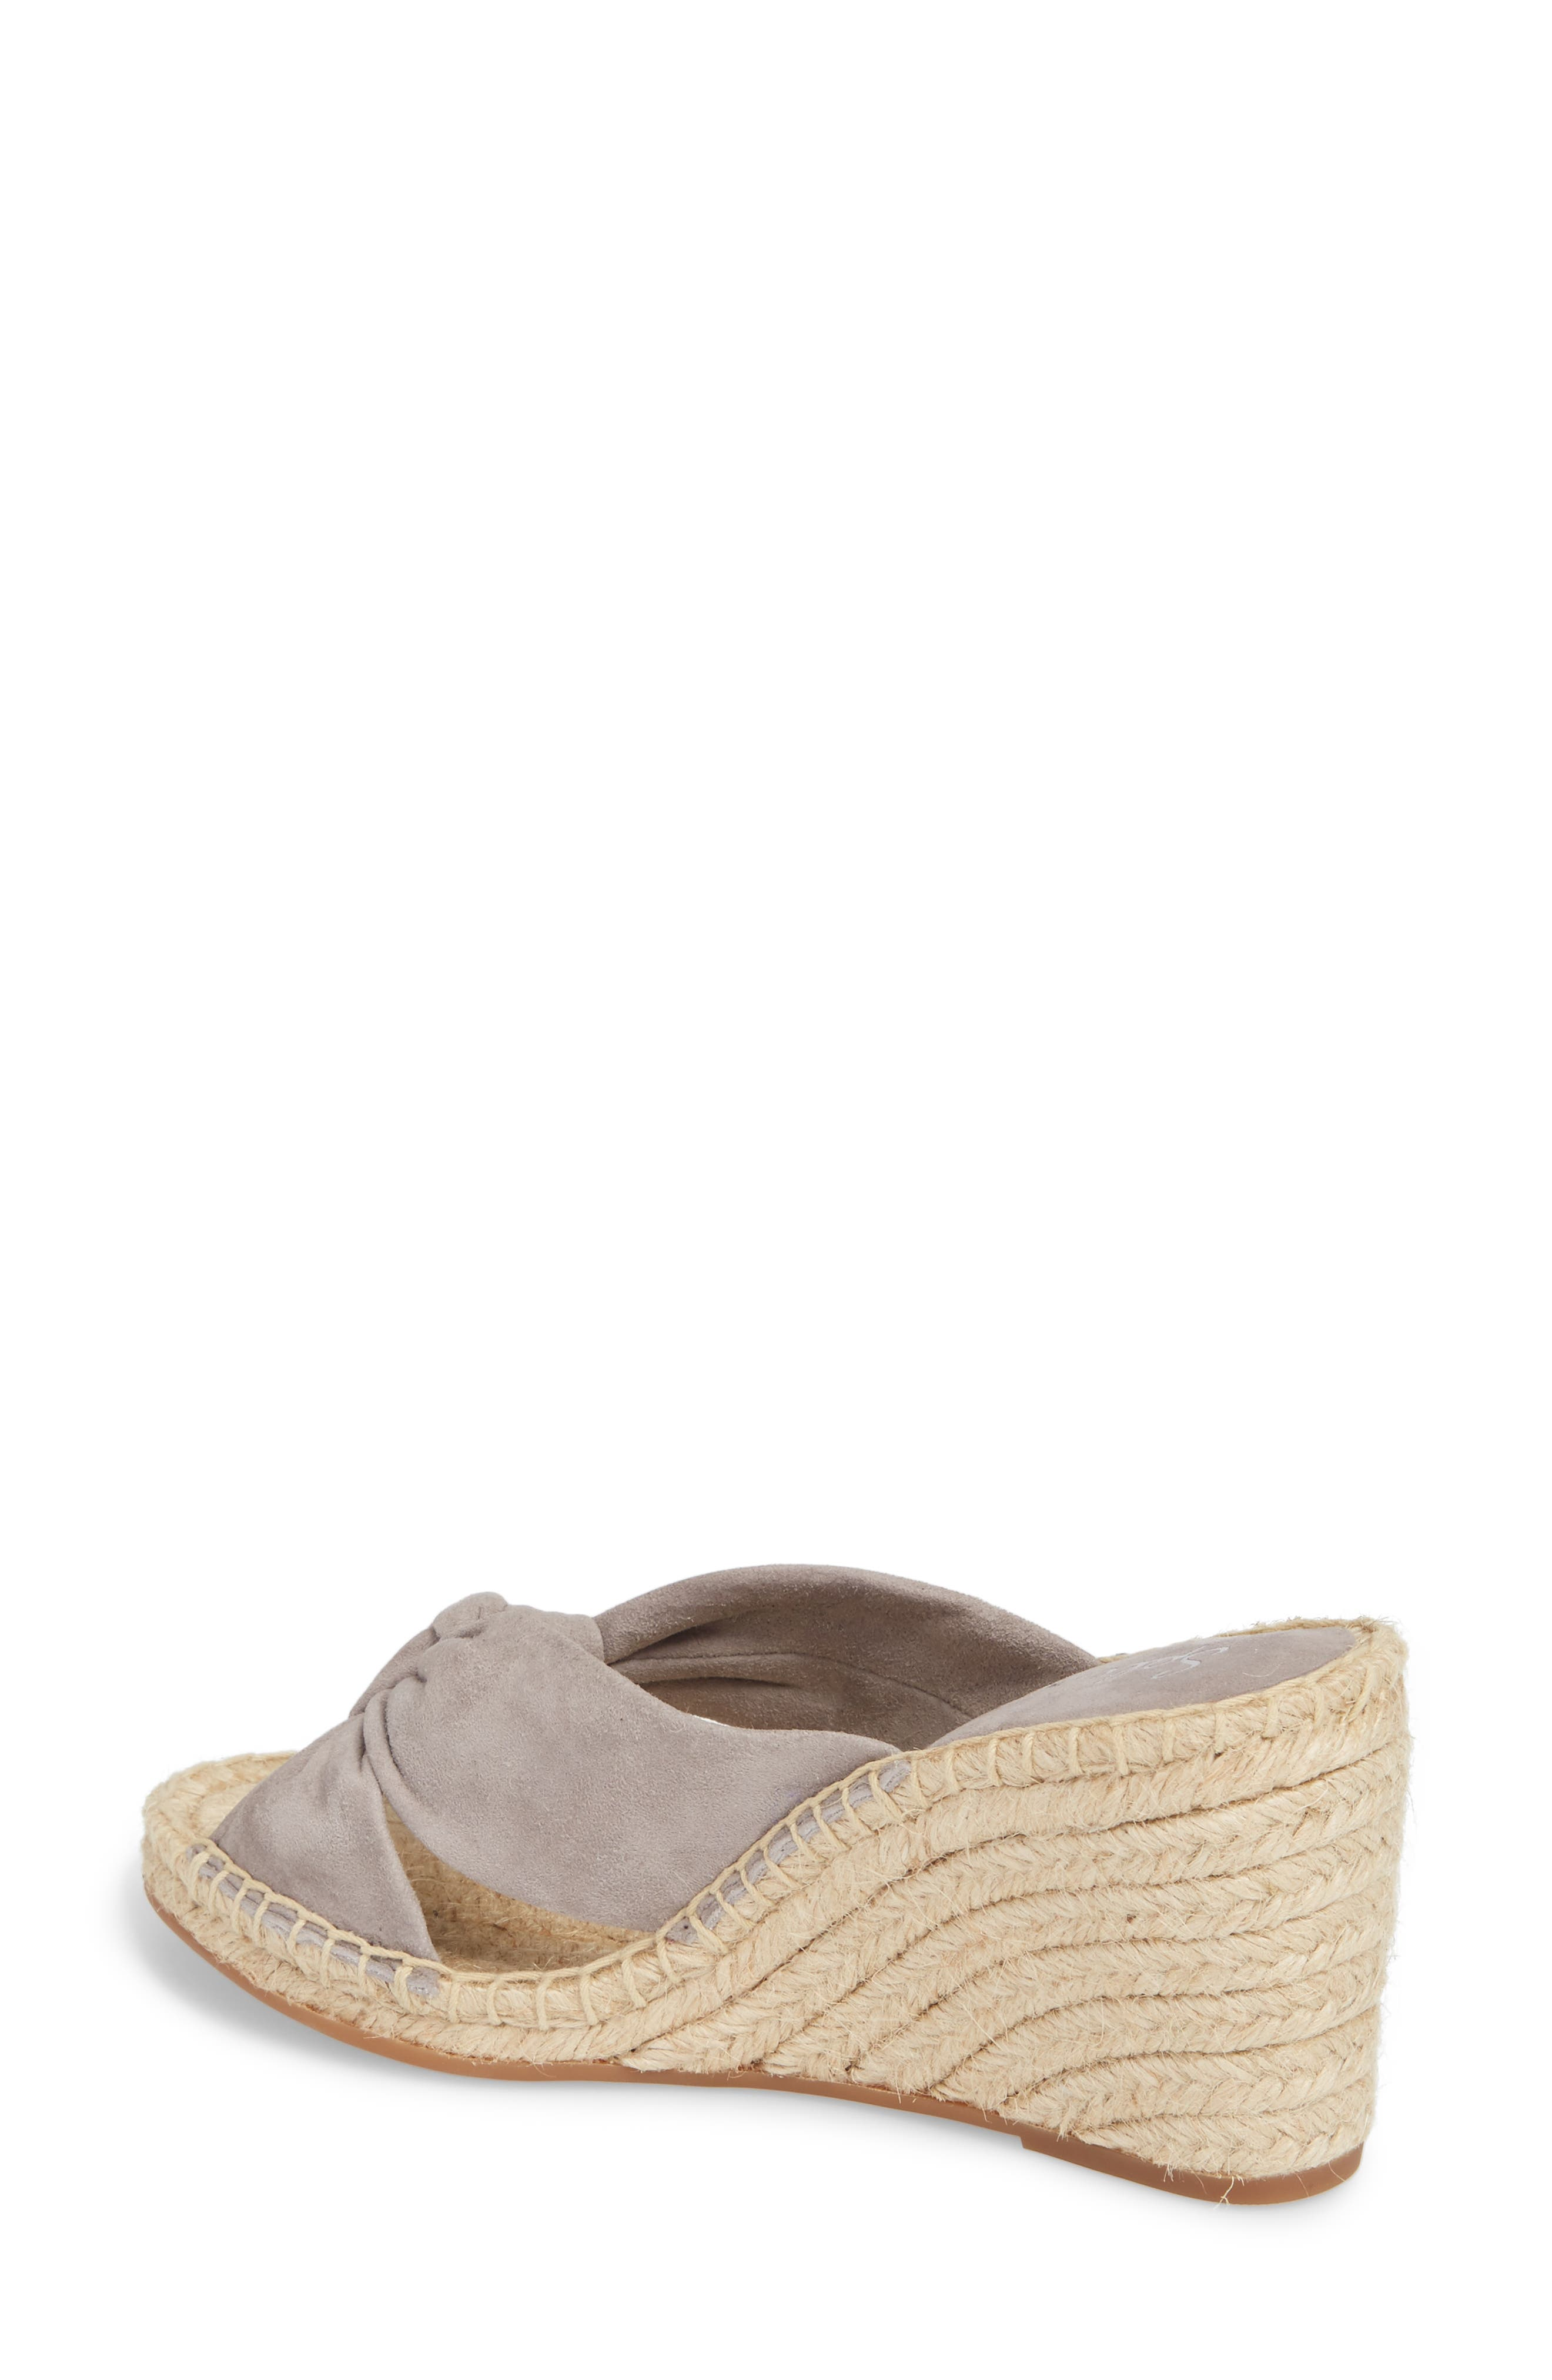 Bautista Knotted Wedge Sandal,                             Alternate thumbnail 2, color,                             053